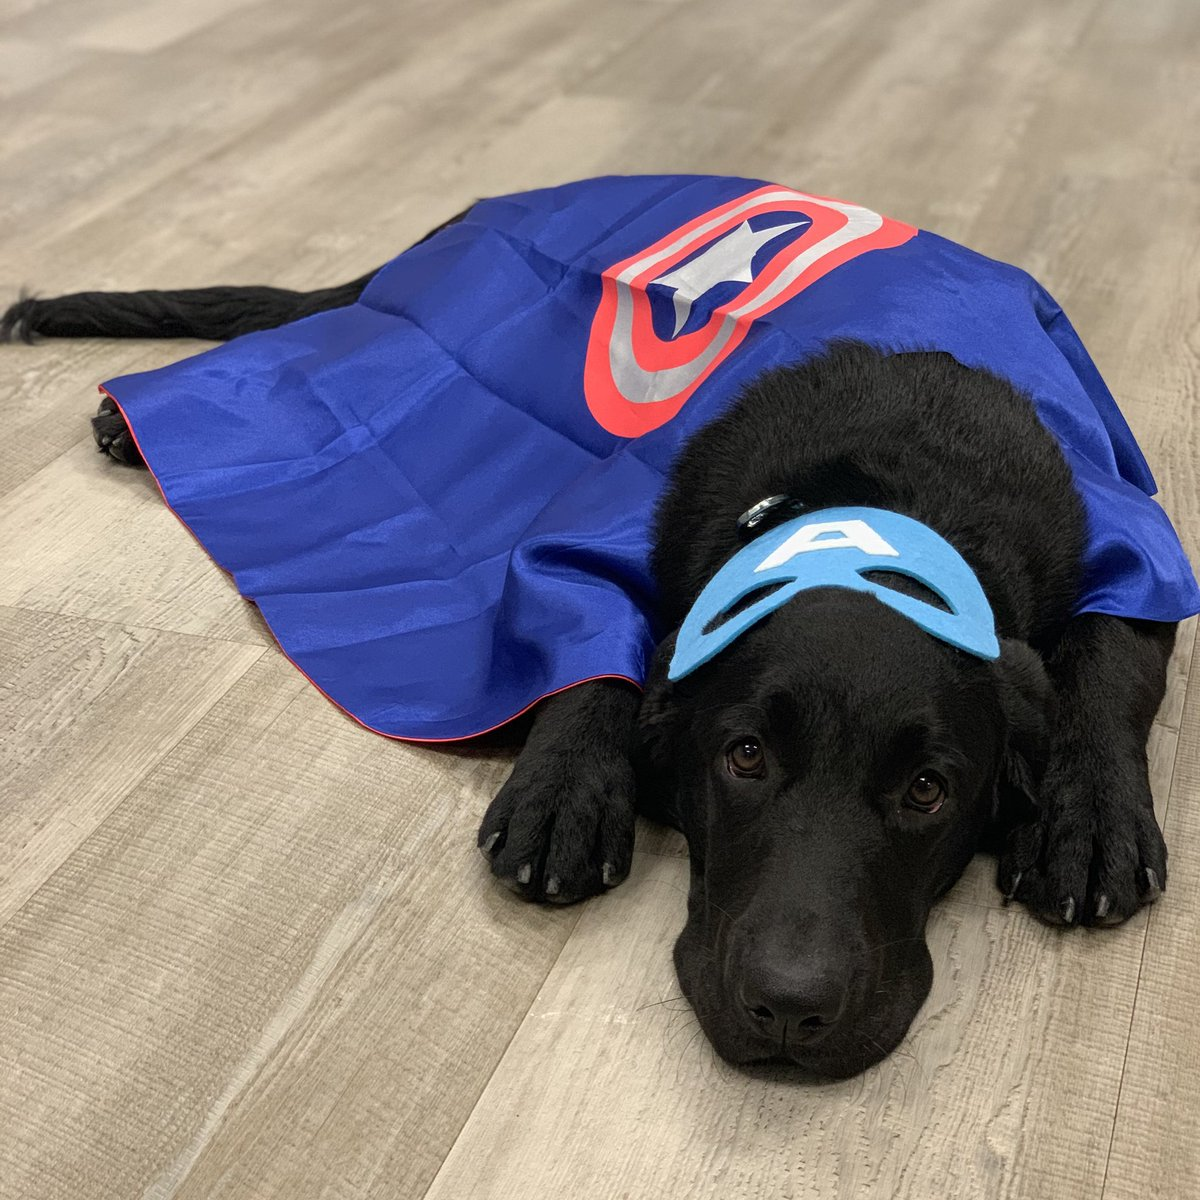 Riley channeling her inner super hero! Let's celebrate National Superhero Day and remember to thank those who make the world a better place for all. We appreciate your sacrifice! #pawsforpurplehearts #nonprofit #pphRiley #servicedogintraining #nationalsuperheroday #herosinuniform pic.twitter.com/qOiGifsJ2u